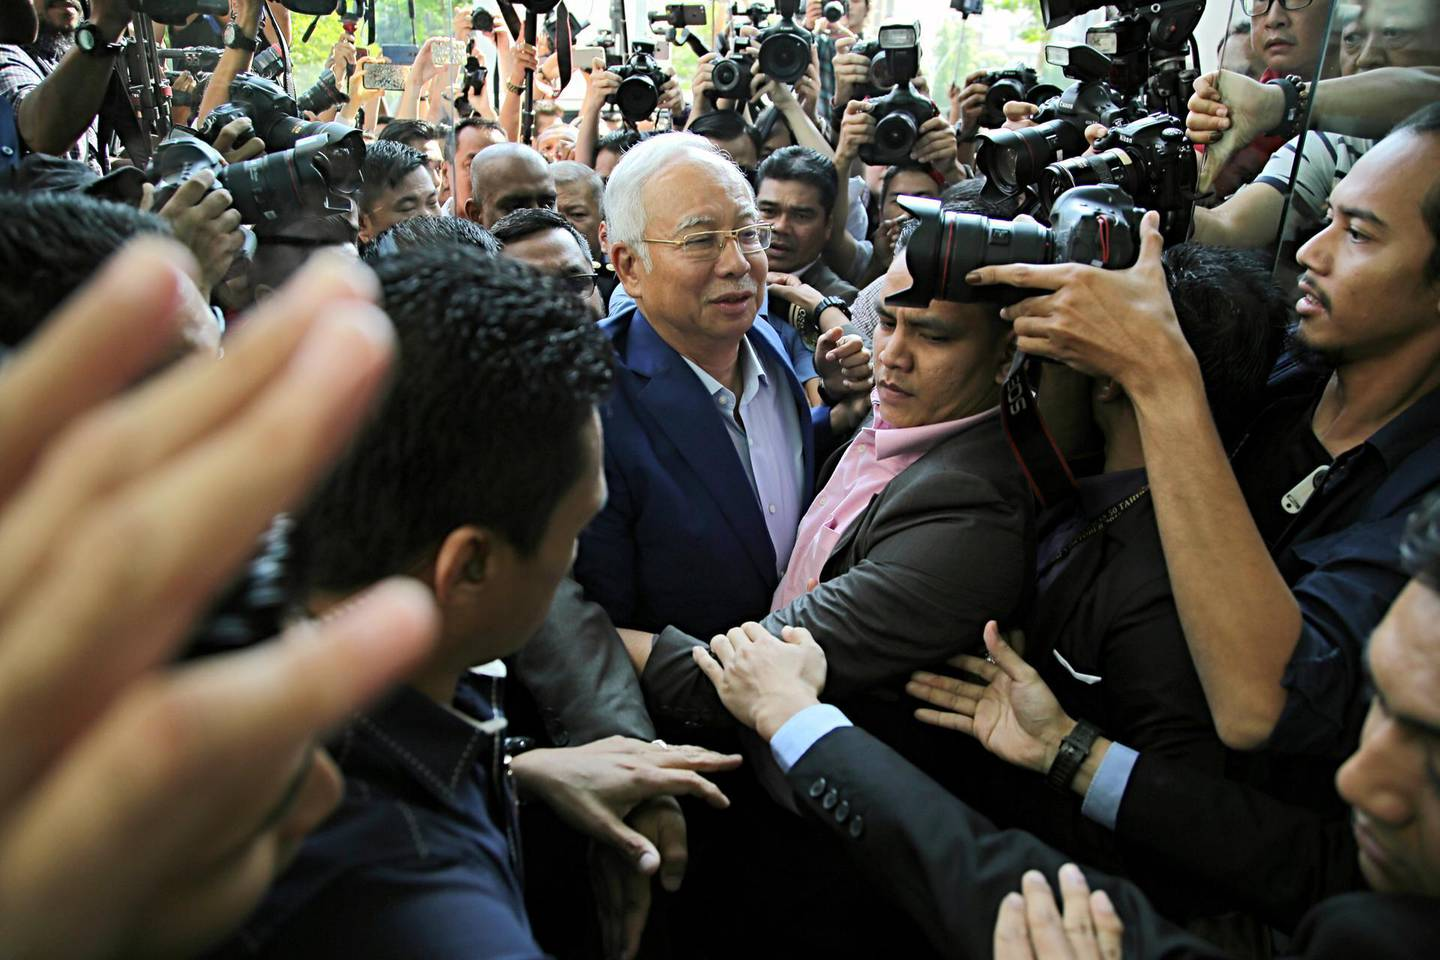 Najib Razak, Malaysia's former prime minister, center, is surrounded by members of the media as he arrives at the Malaysian Anti-Corruption Commission's headquarters in Putrajaya, Malaysia, on Tuesday, May 22, 2018. Najibis at the center of investigations looking into theMalaysian state investment fund known as 1MDB and whether it was used for embezzlement or money laundering. Photographer: Rahman Roslan/Bloomberg